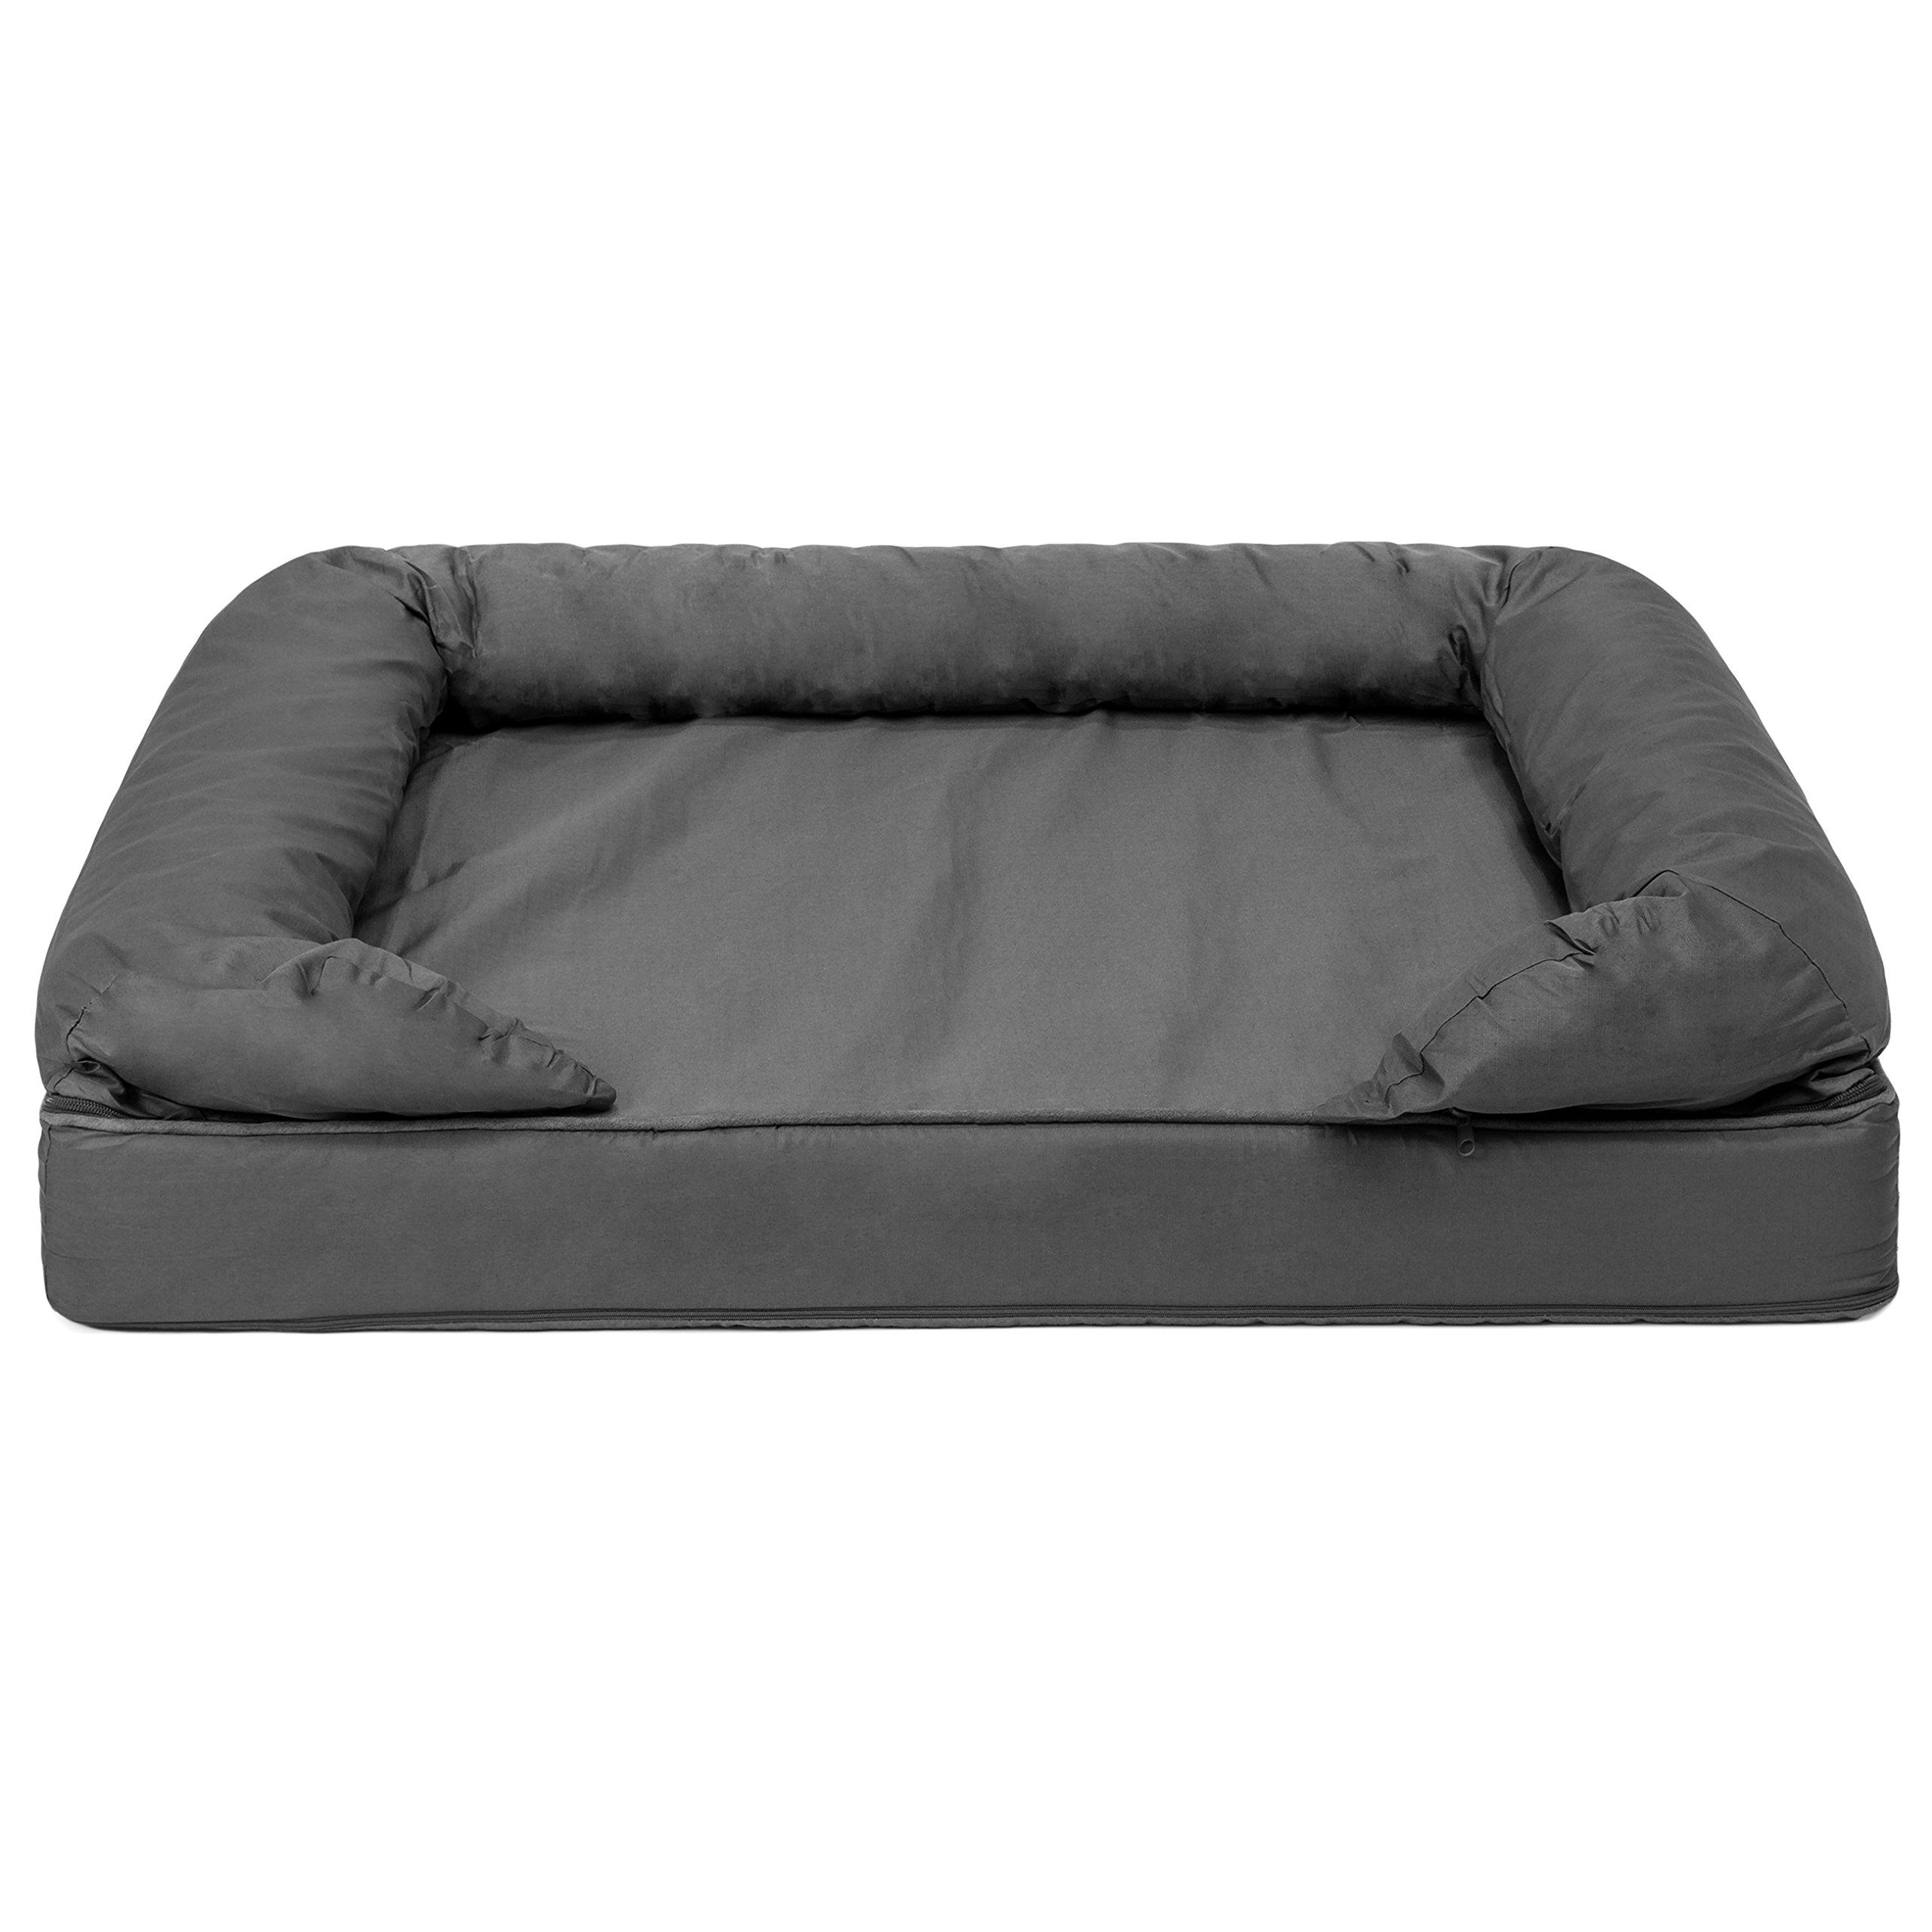 large support orthopedic s the beds breed pin dog for bed muscles dogs have spine added